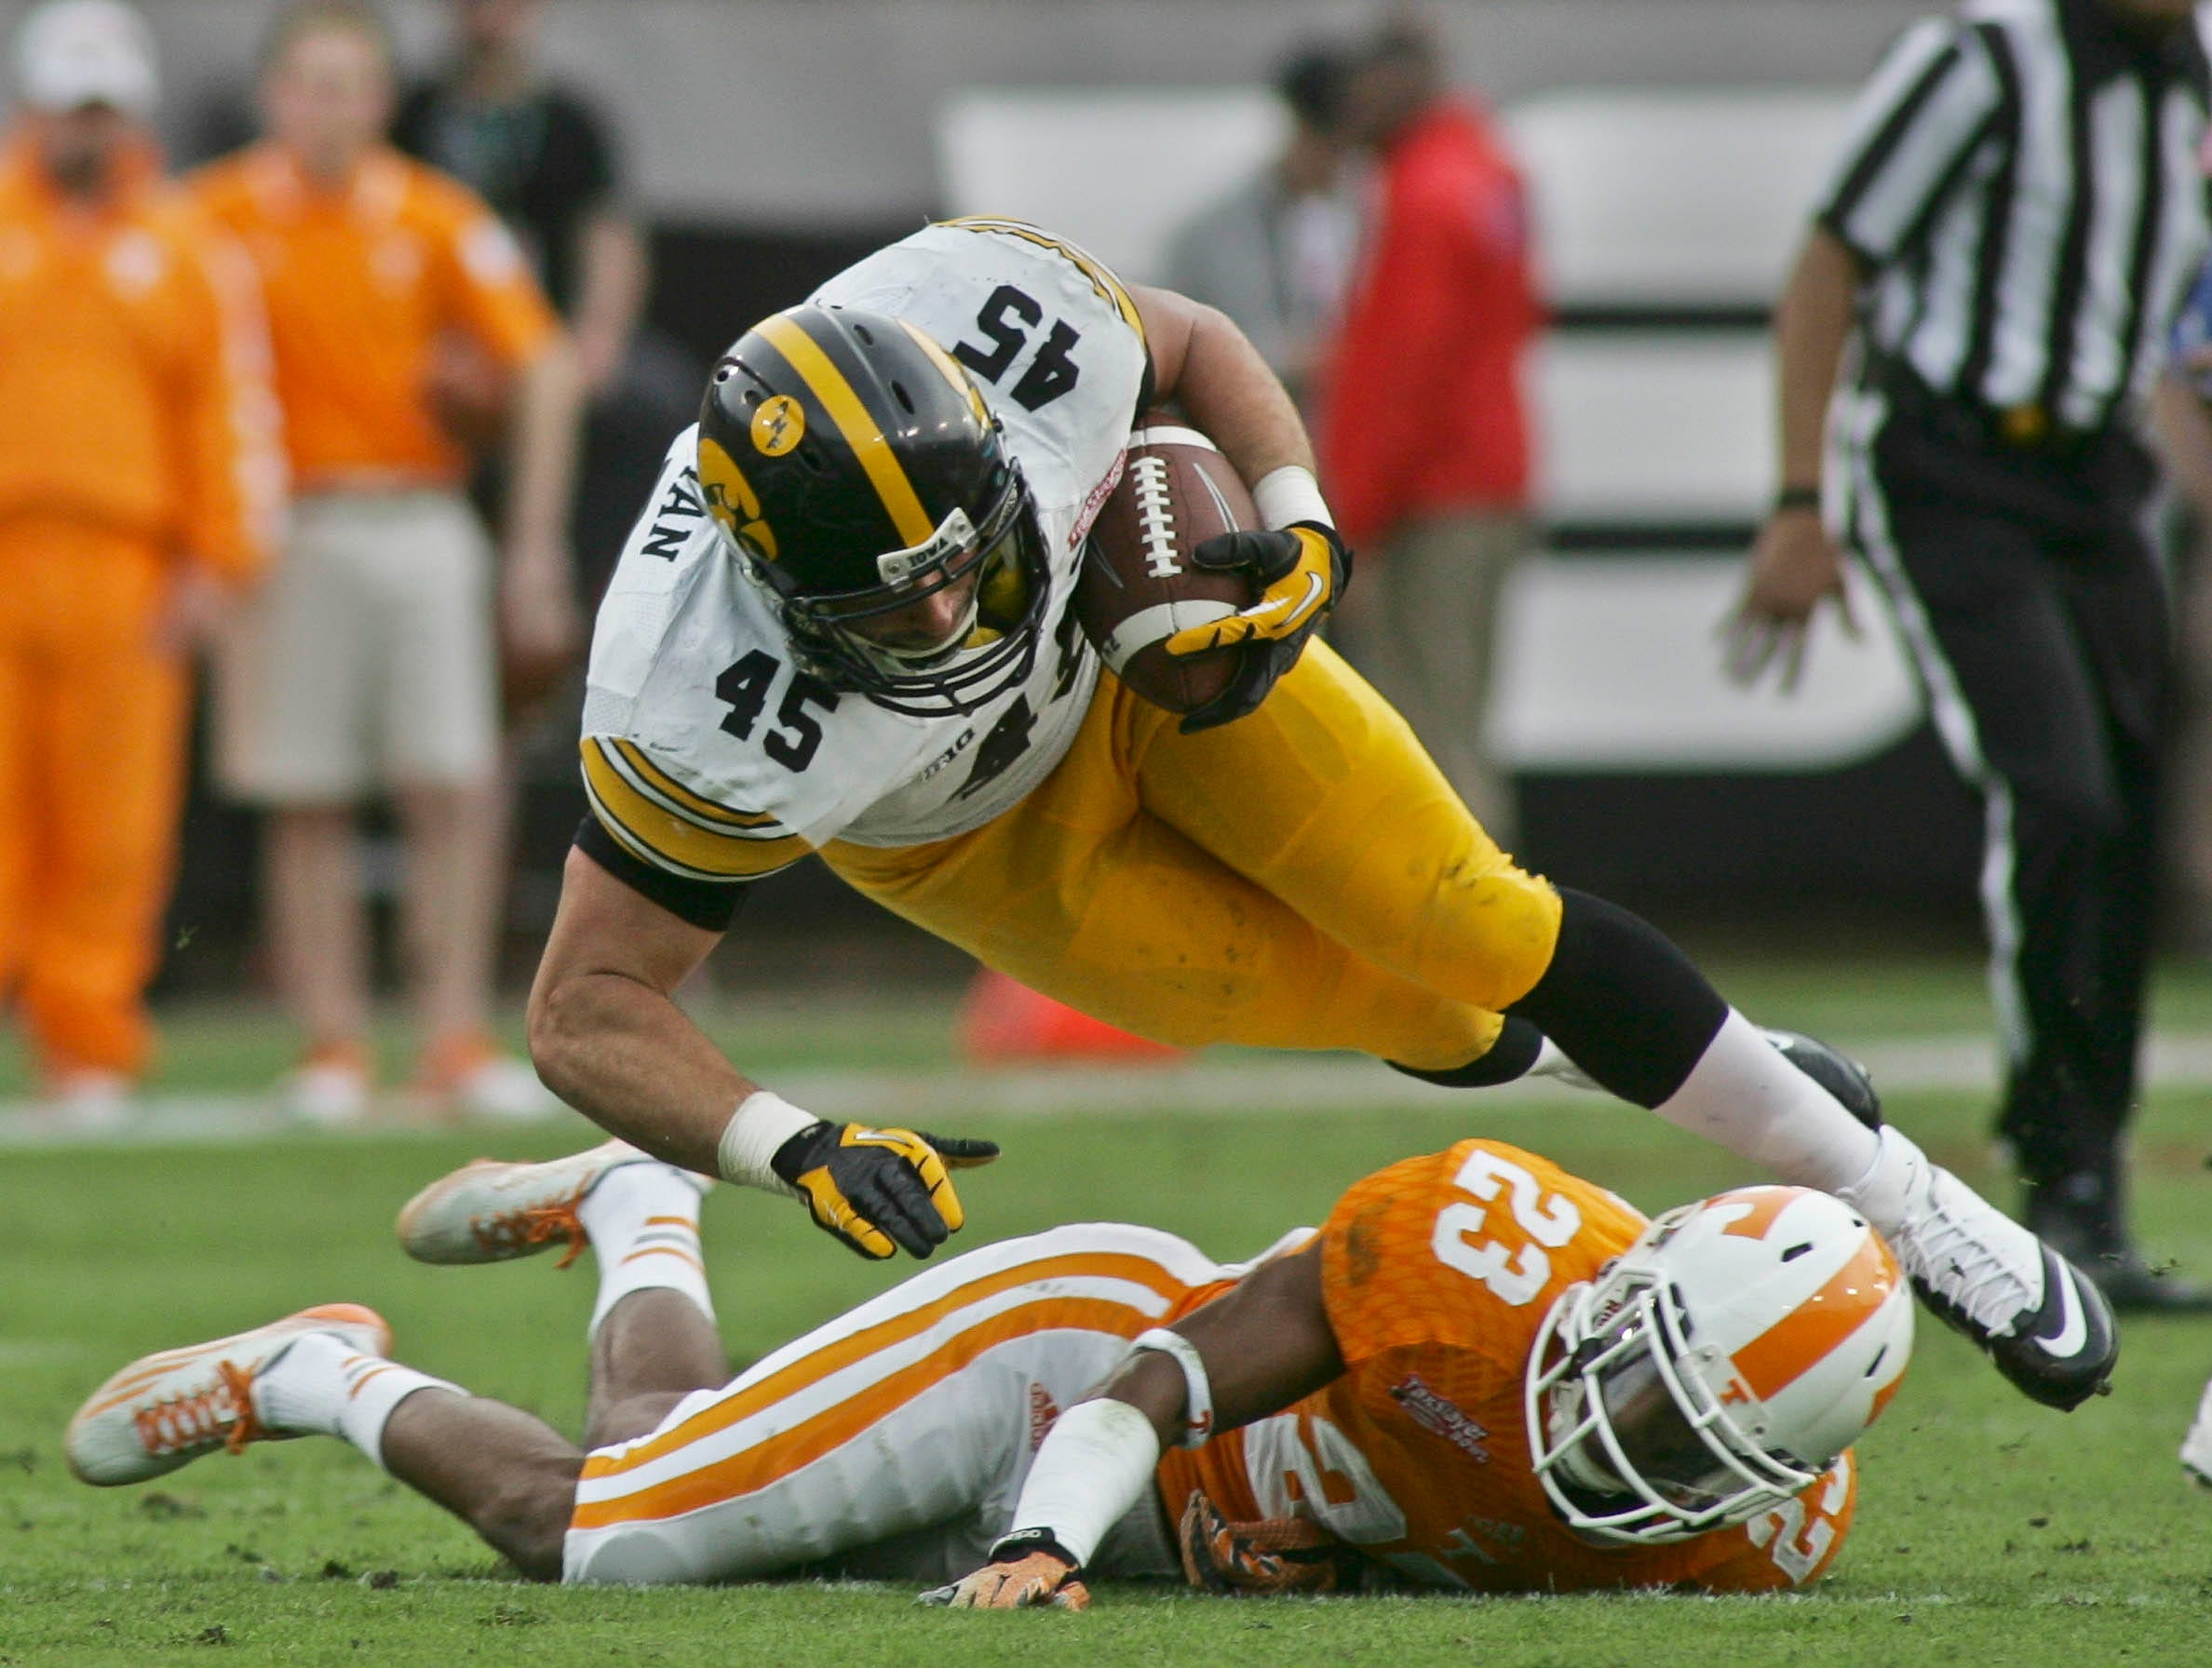 Jan 2, 2015; Jacksonville, FL, USA; Iowa Hawkeyes running back Mark Weisman (45) dives over Tennessee Volunteers defensive back Cameron Sutton (23) in the first quarter of their 2015 TaxSlayer Bowl at EverBank Field. Mandatory Credit: Phil Sears-USA TODAY Sports